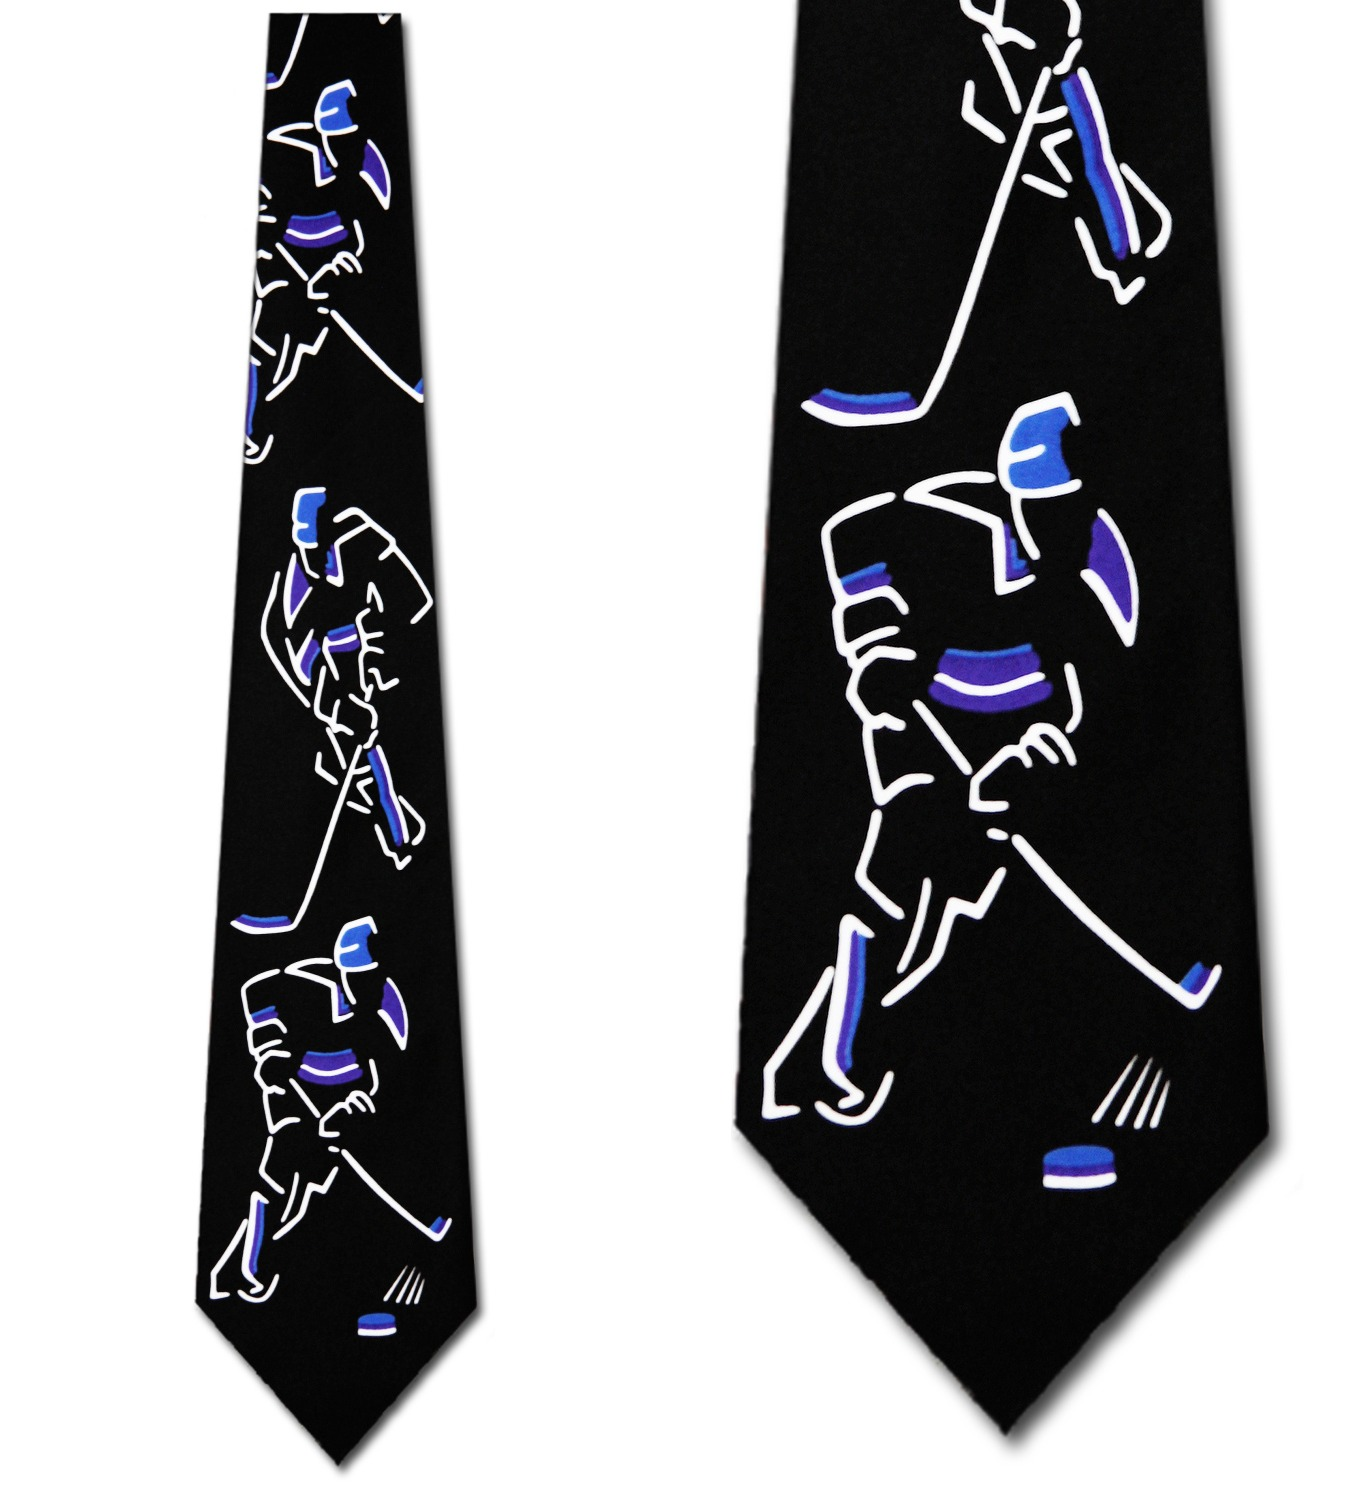 Hockey Images (Black and Blue) Necktie Mens Tie by